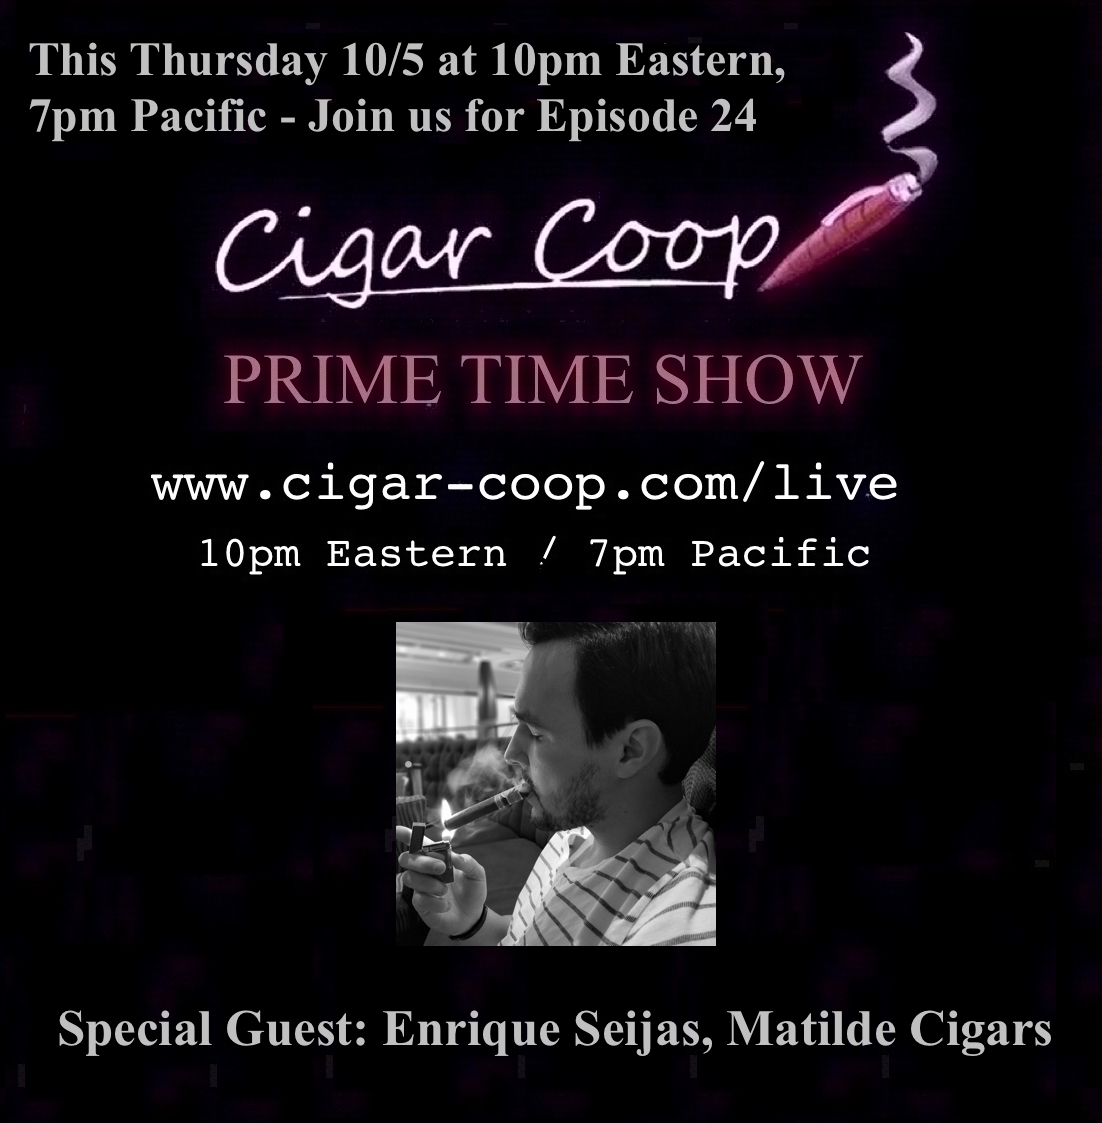 Announcement: Prime Time Show Episode 24: 10/5/17 10pm Eastern, 7pm Pacific